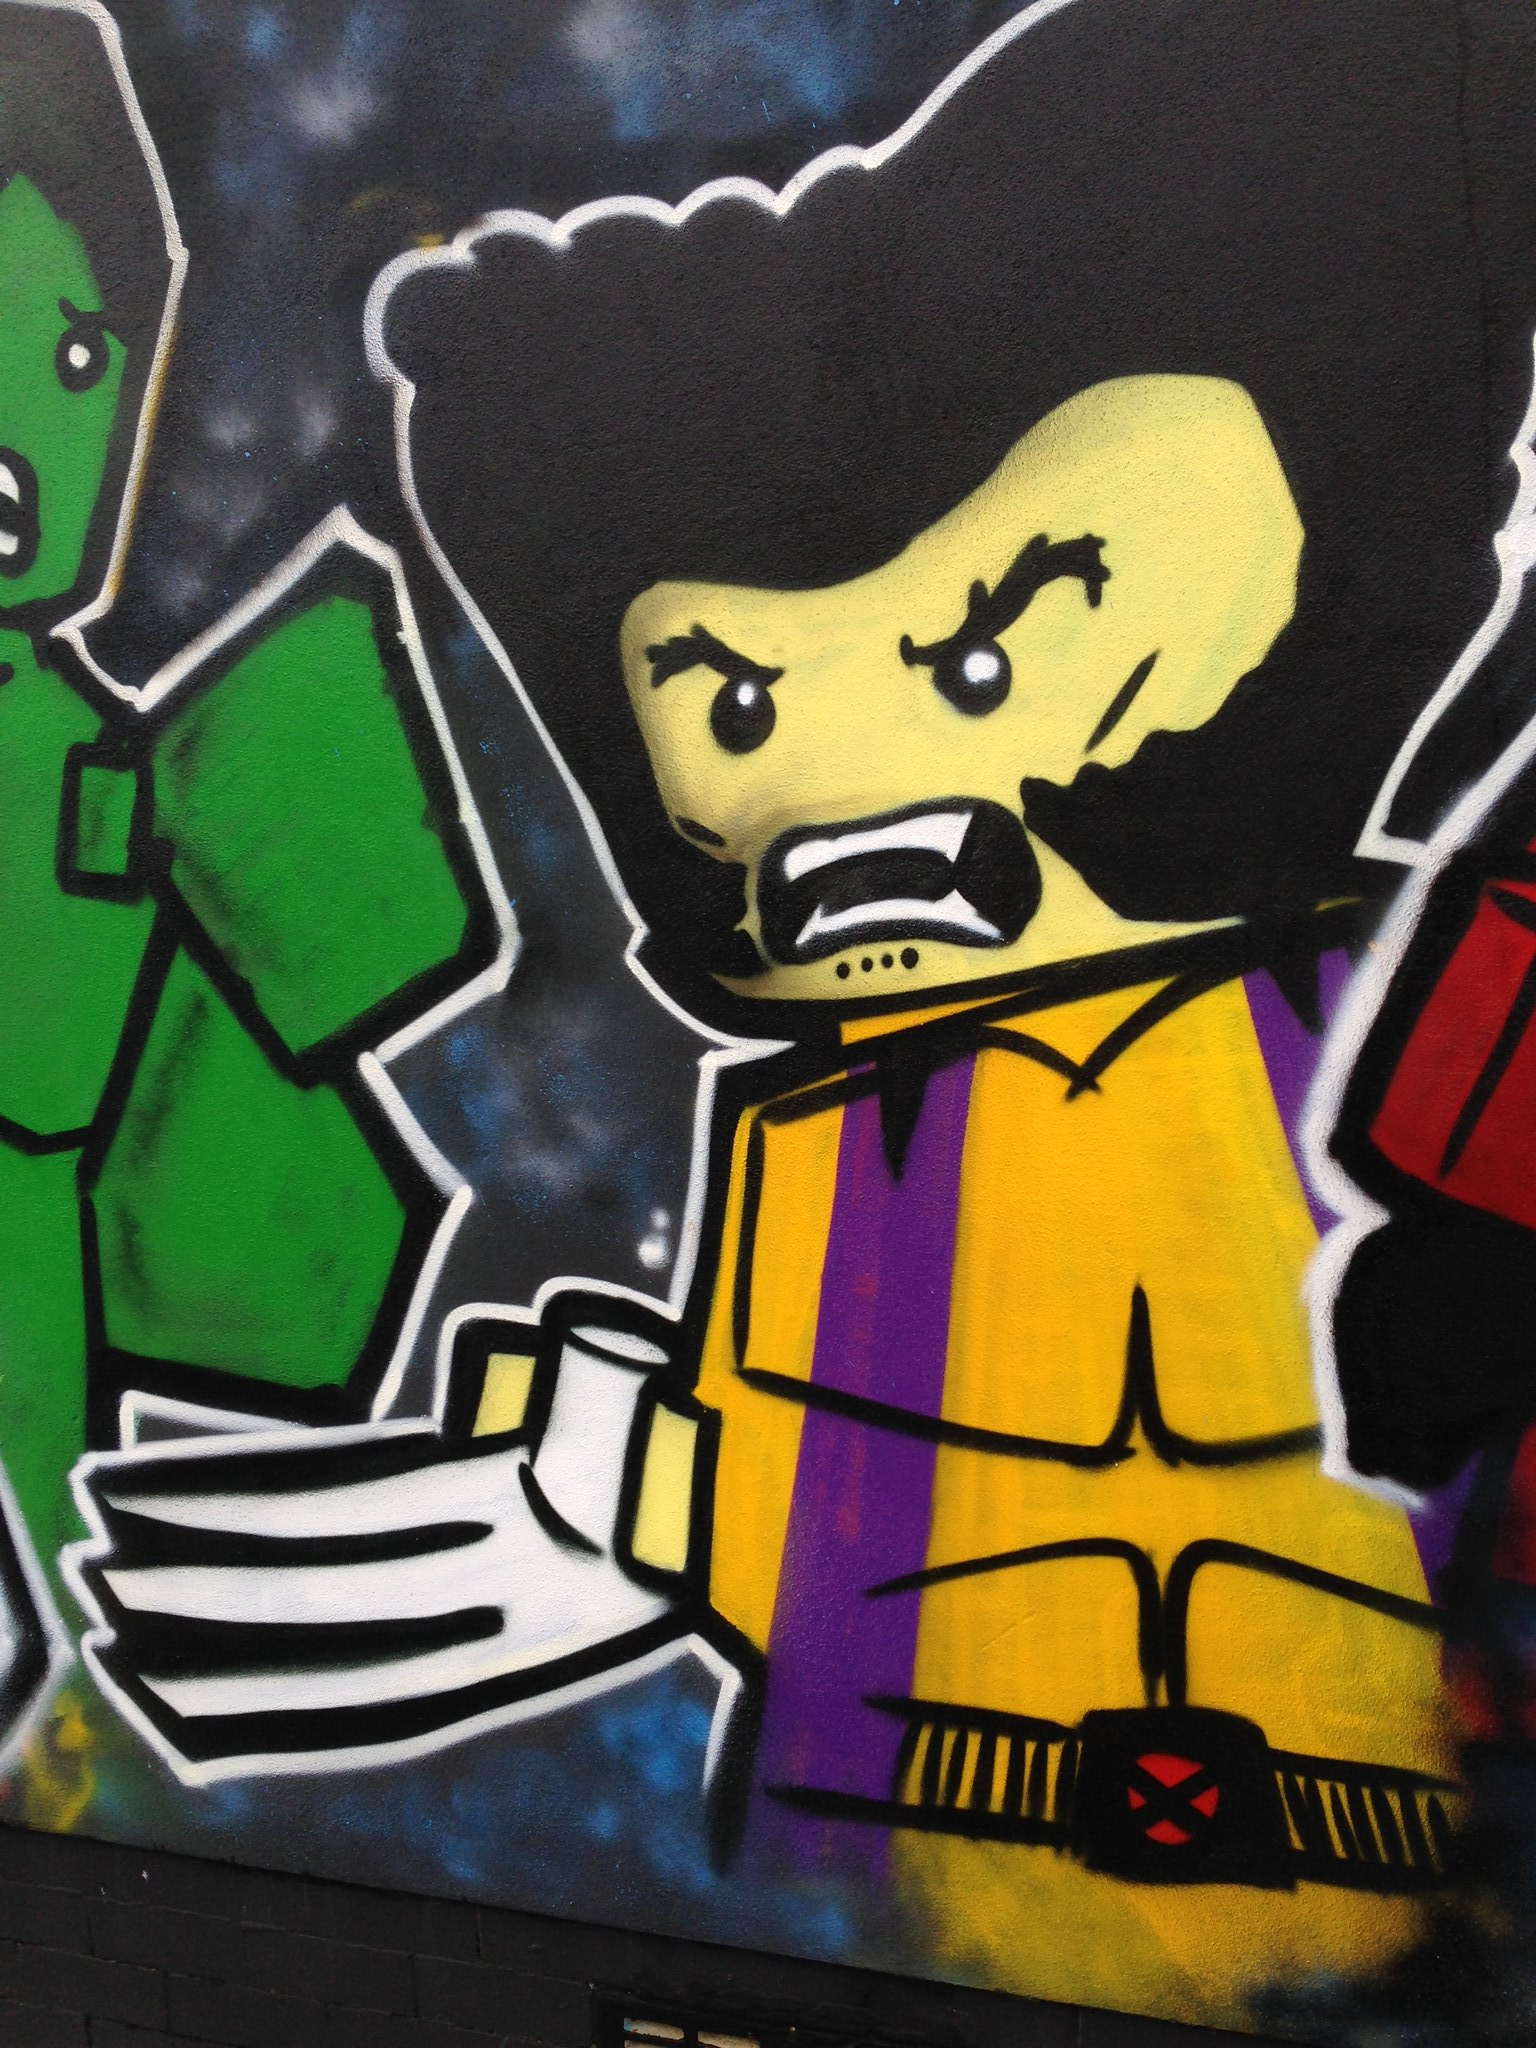 Marvel Lego Wolverine street art, Blackpool, by Dominic Carlyle